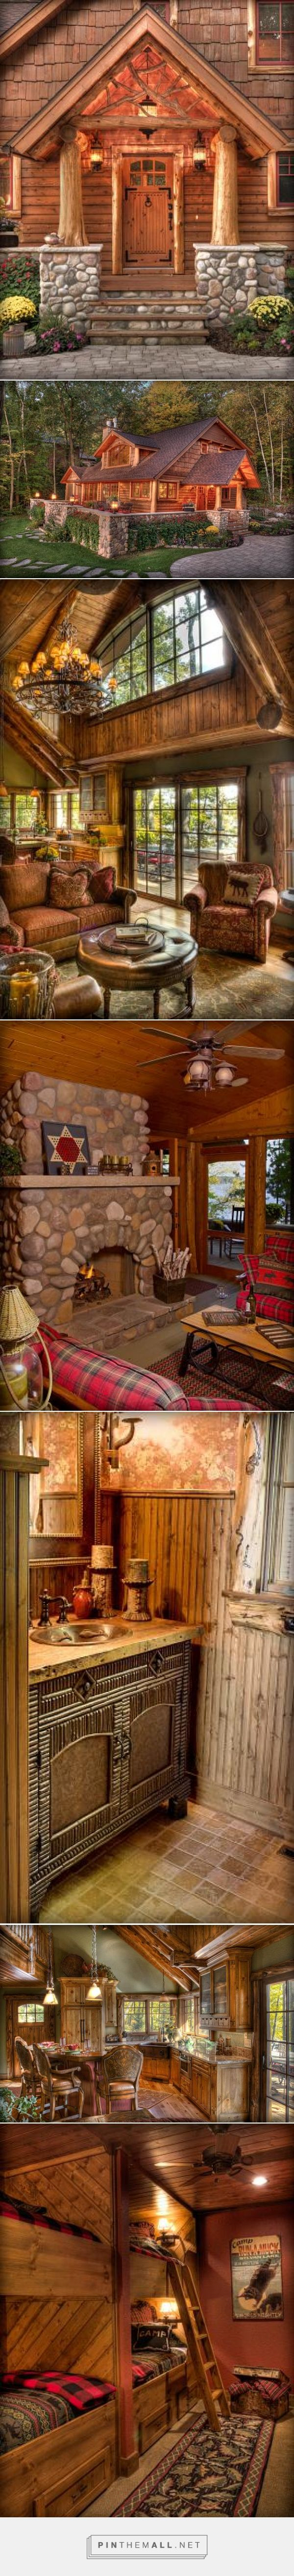 Living Room Decorating Ideas Log Cabin best 10+ log home decorating ideas on pinterest | log home living